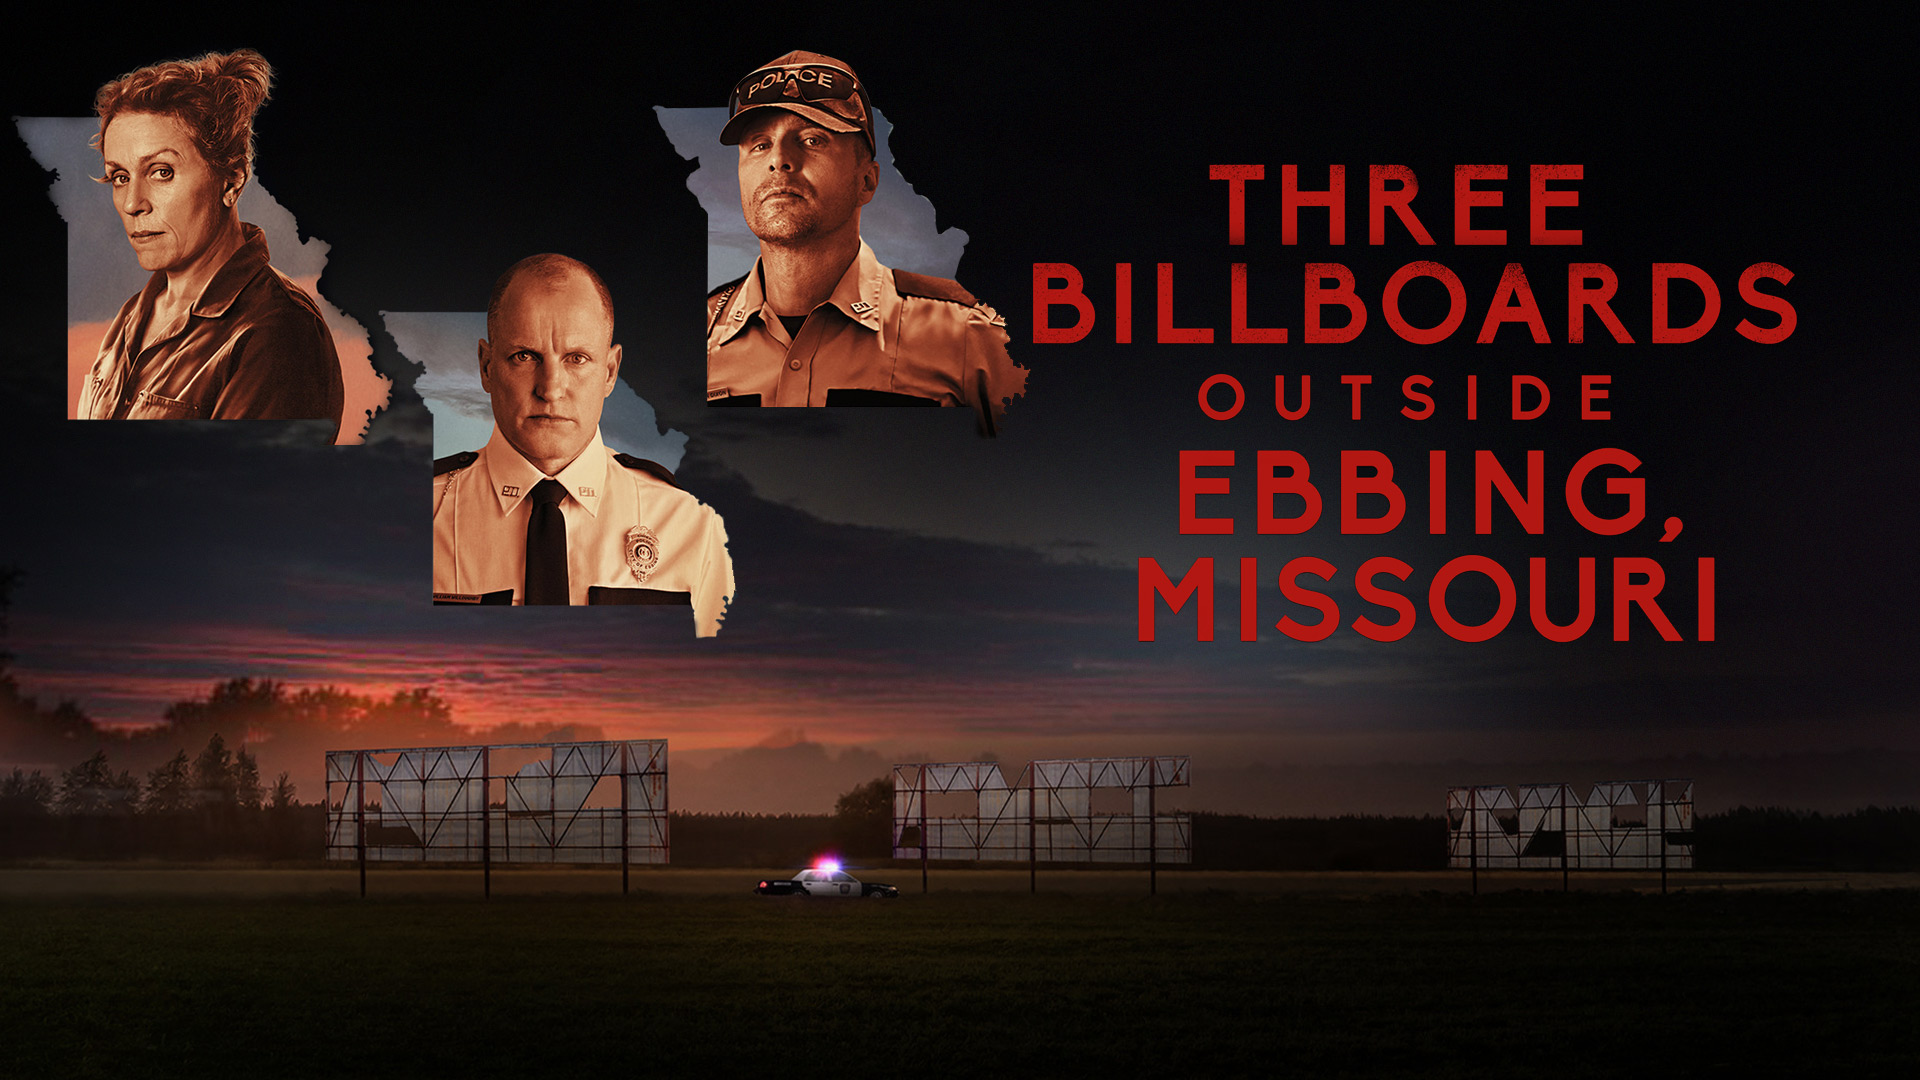 Three Billboards Outside Ebbing, Missouri (4K UHD)